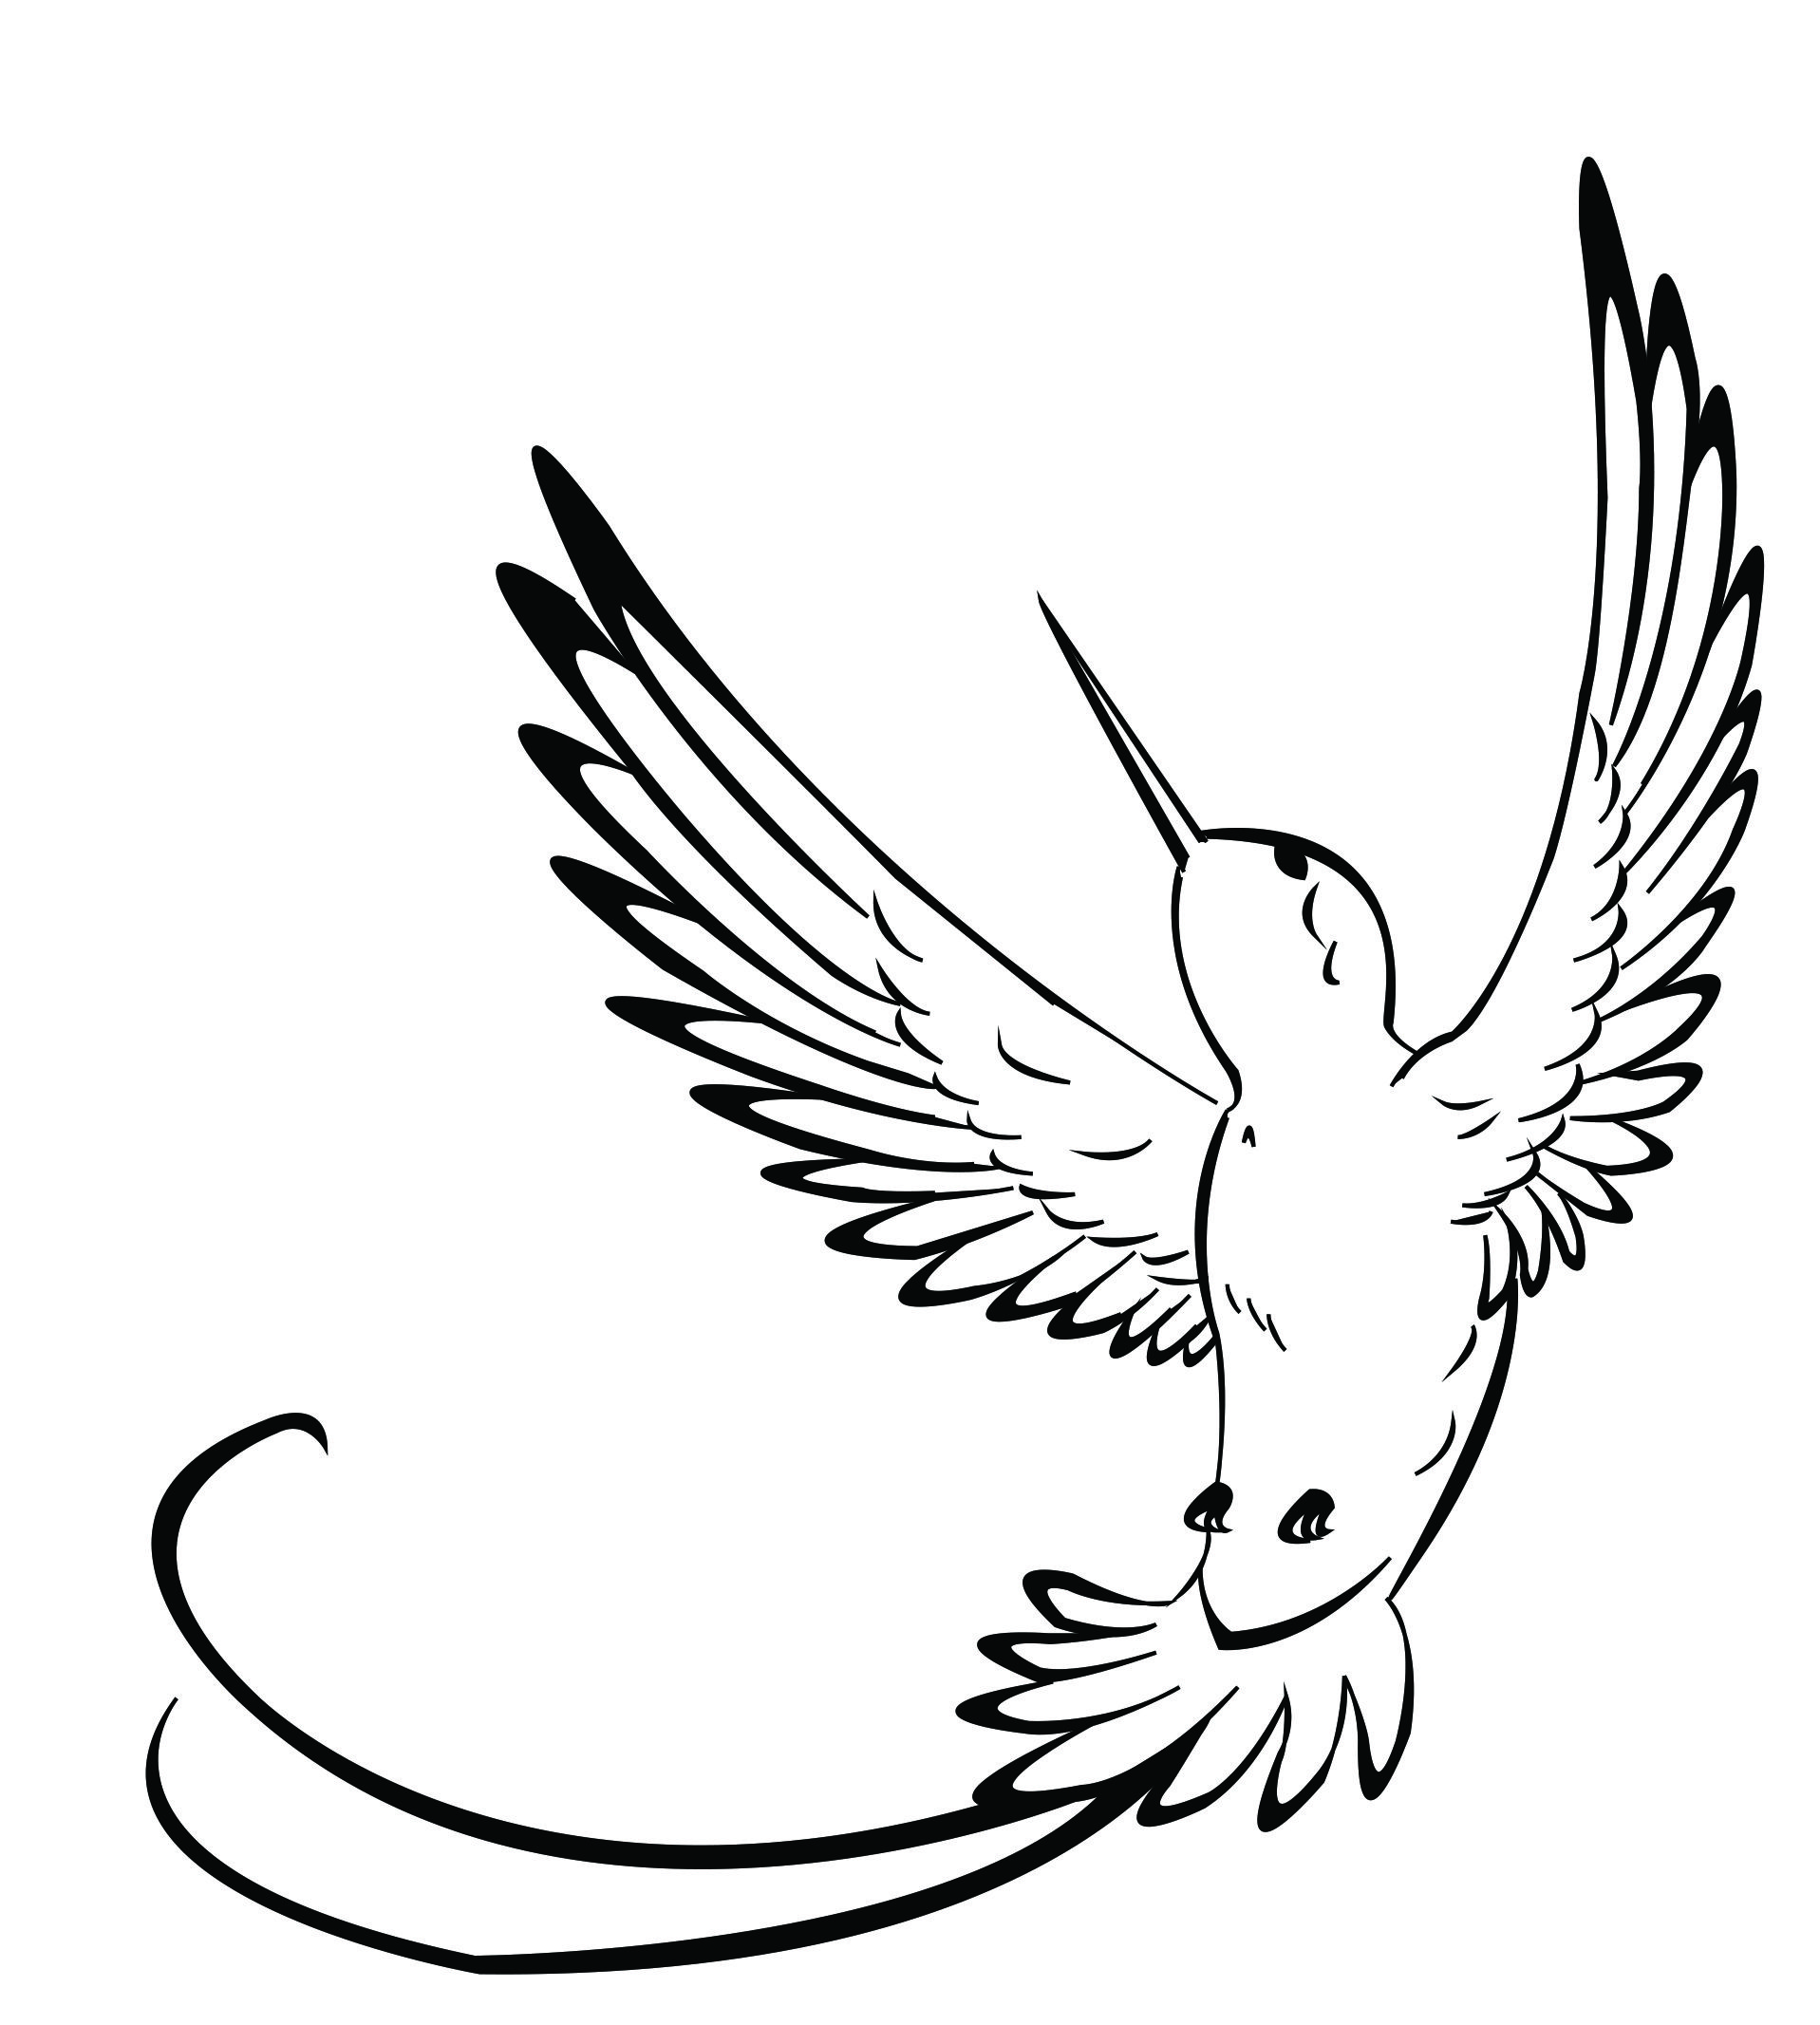 Hummingbird clipart coloring page. Drawings best sketch